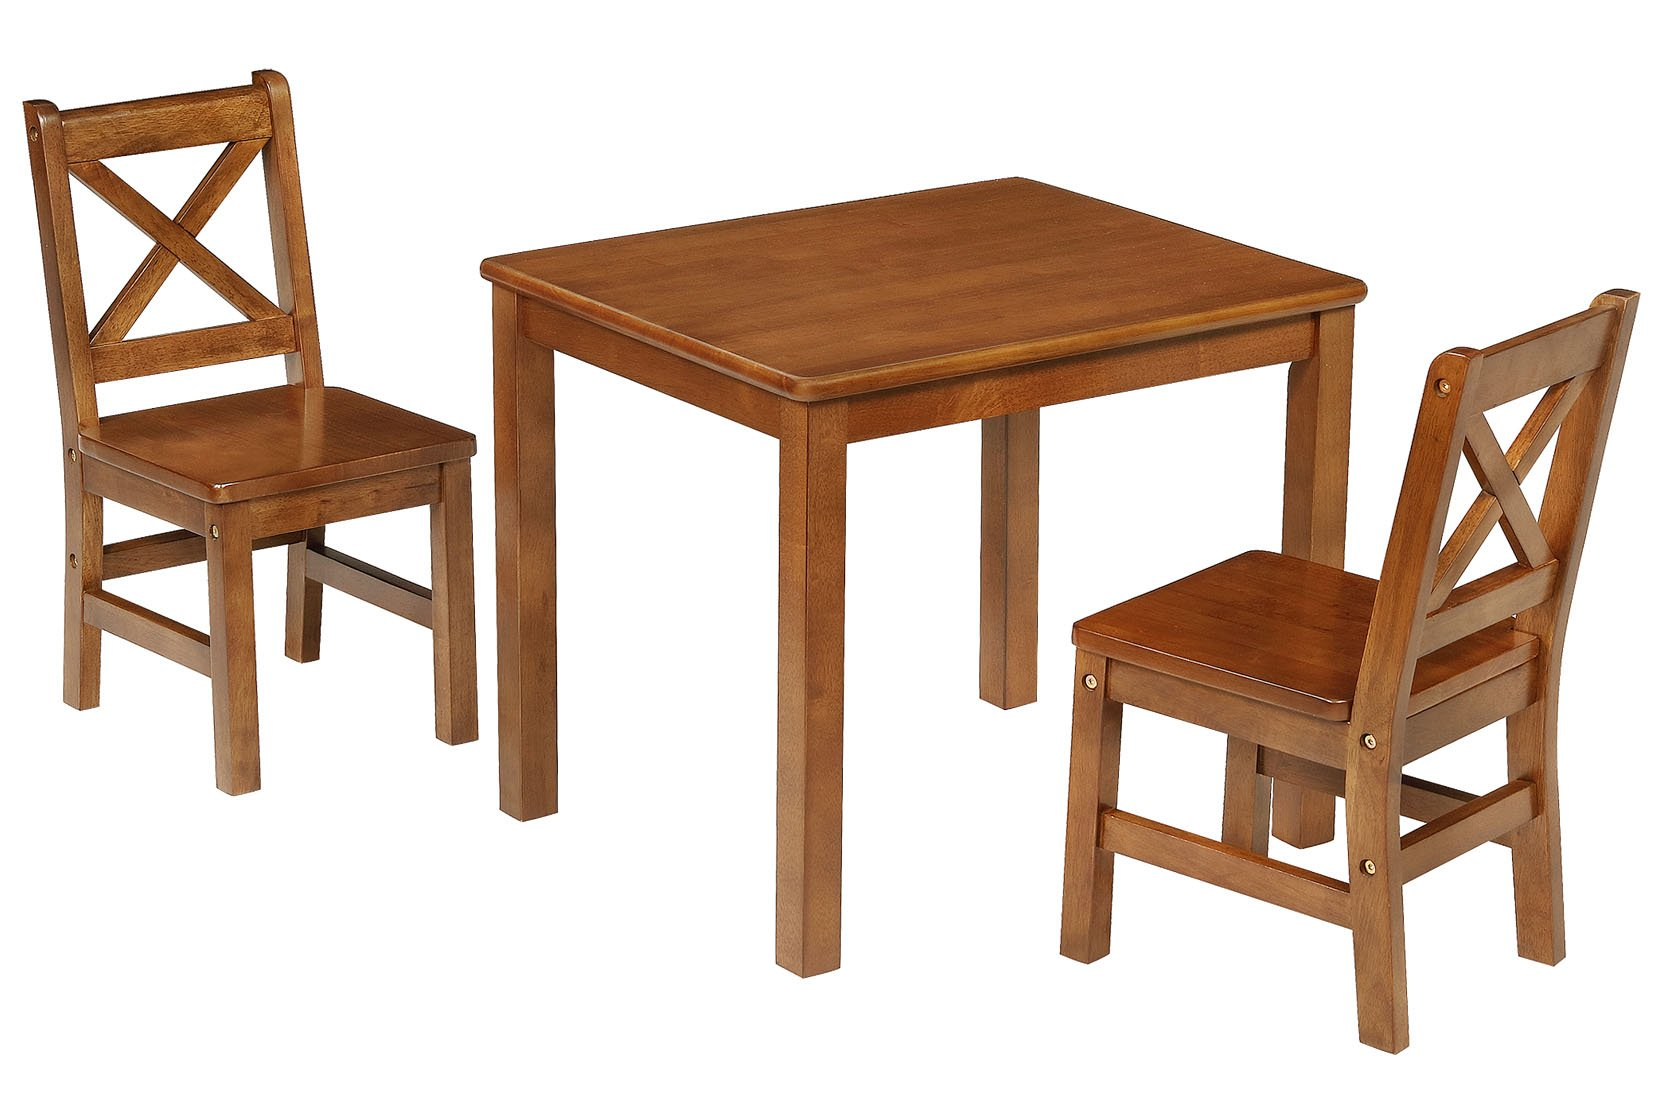 Best Rated In Kids' Tables & Chairs & Helpful Customer